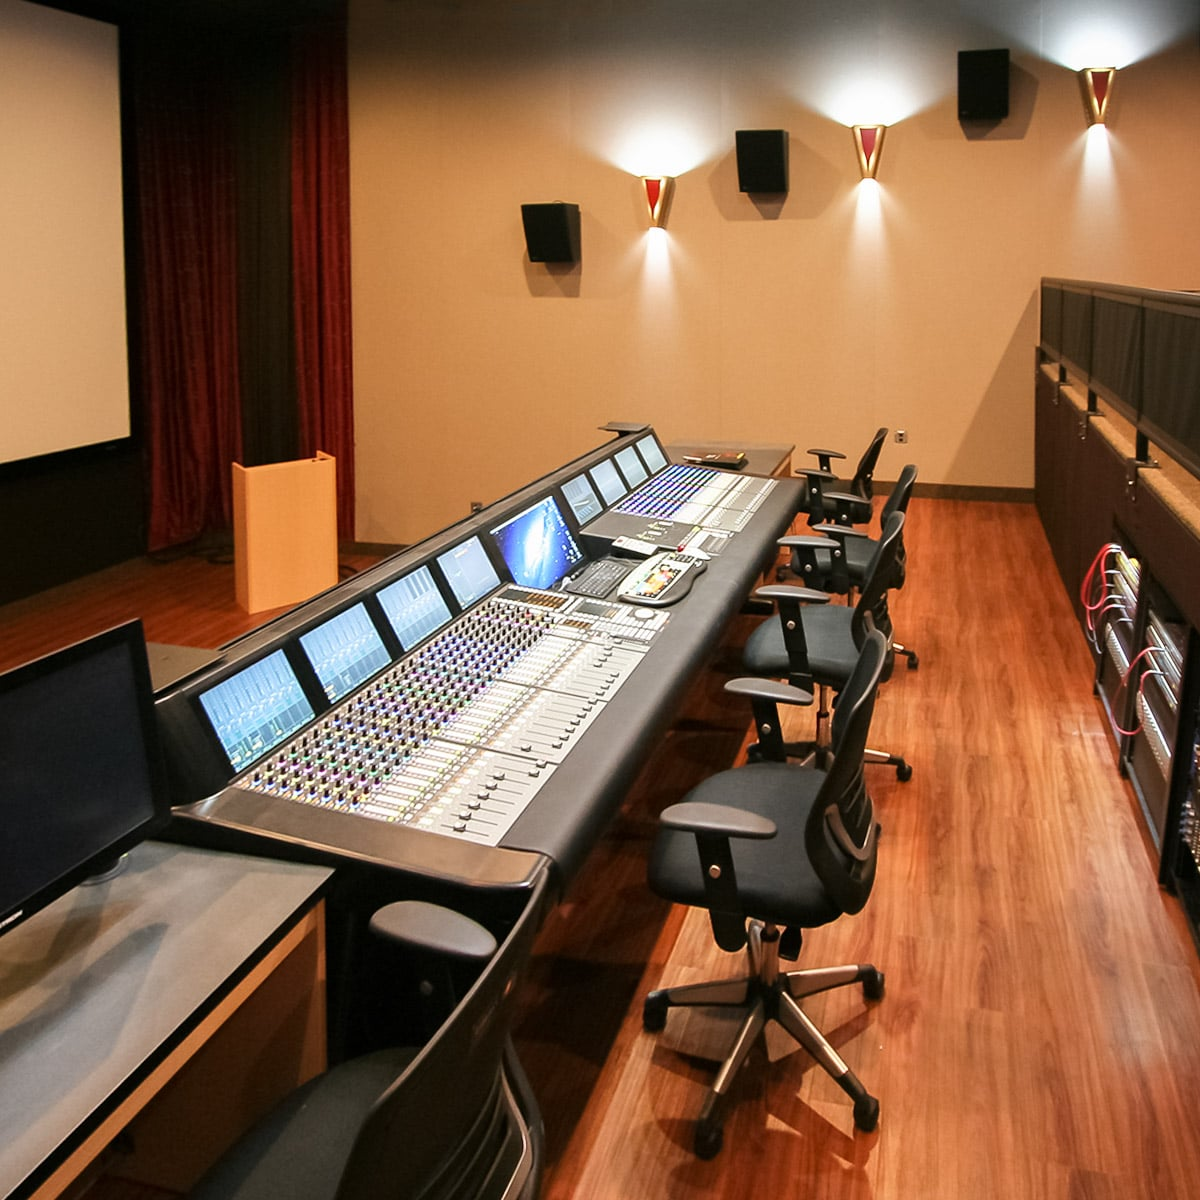 Lovely ... Liberty University Mixing Room Using Stretch Wall System For Side Wall  Acoustics And Speaker Covers Under ...